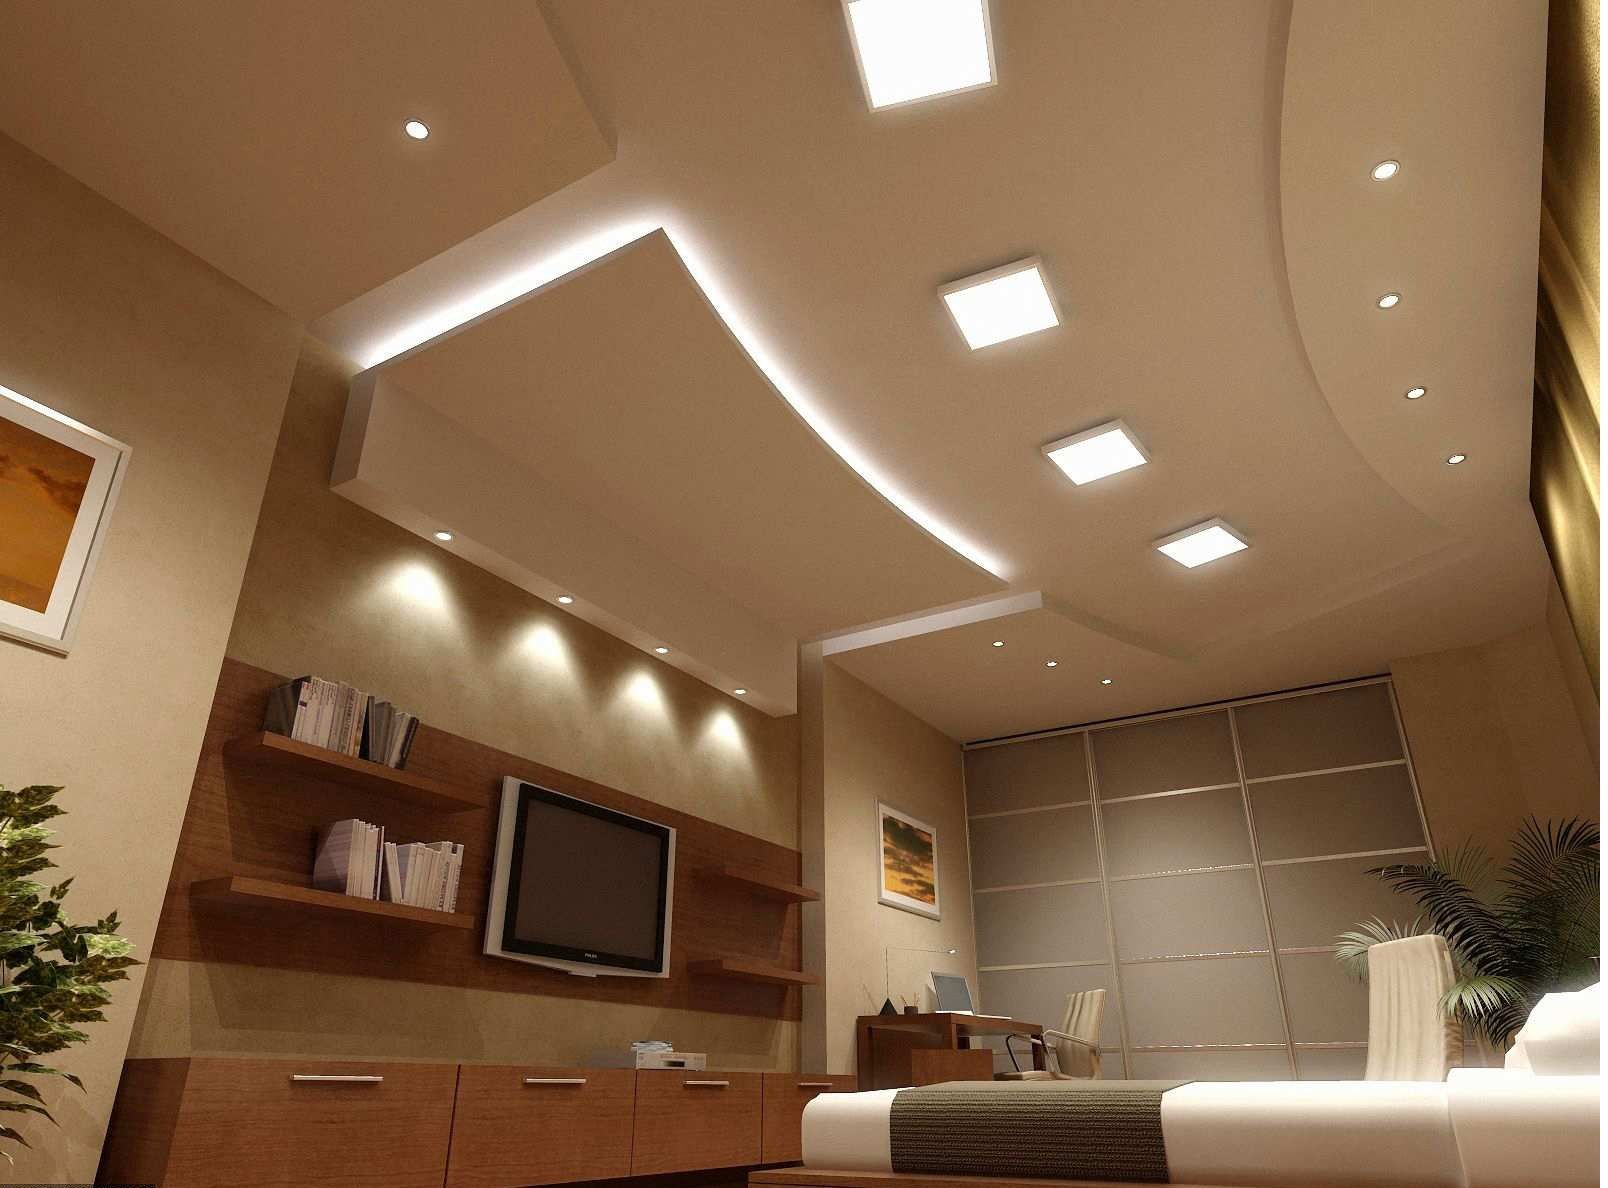 Living Room Ceiling Light Creative 10 Ideas For Residential Lighting Ceiling Design